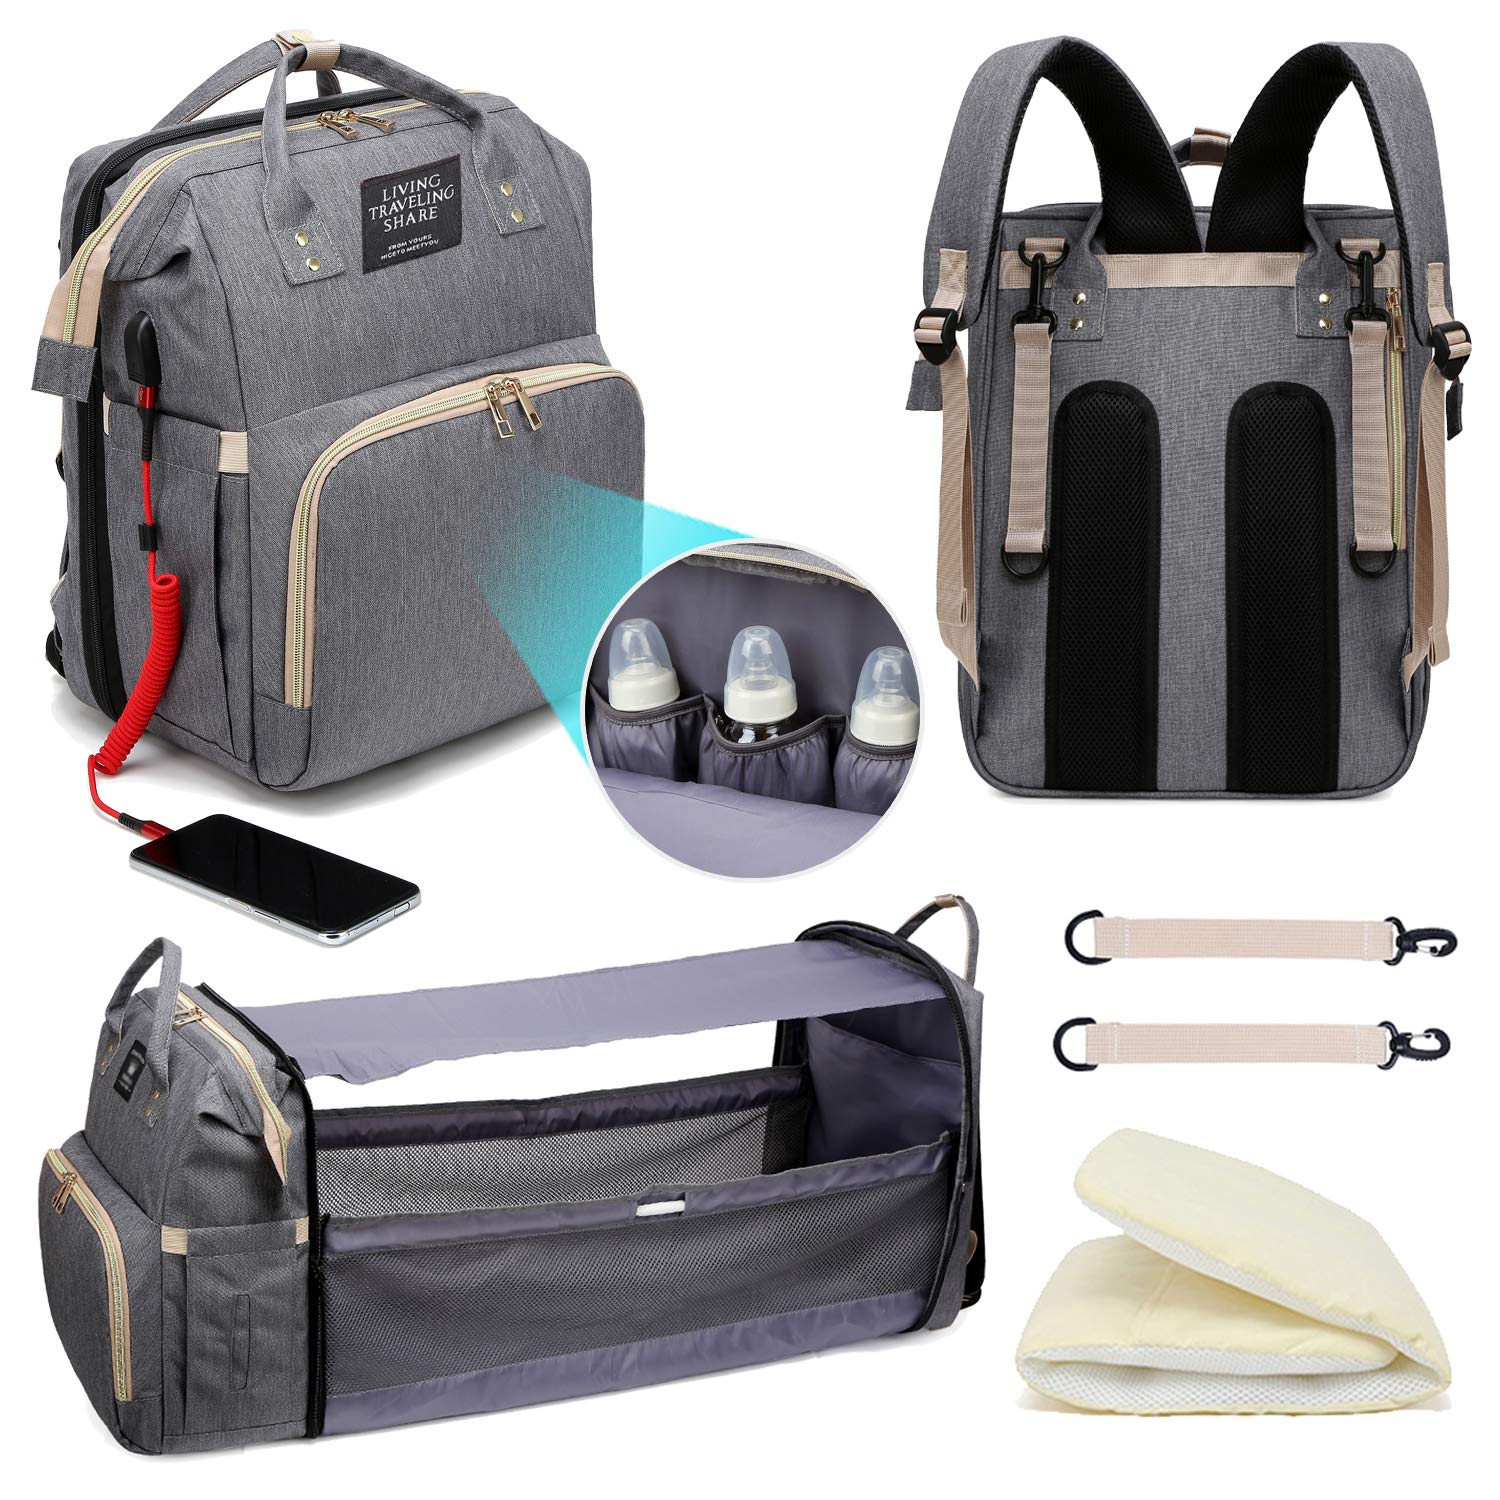 Diaper Bag Backpack with Changing Station,Travel Mommy Bag, Baby Travel Bed, Water Resistant Diaper Bag Backpack with USB Charging Port,Foldable Crib,Portable Baby Travel Bag (Grey)